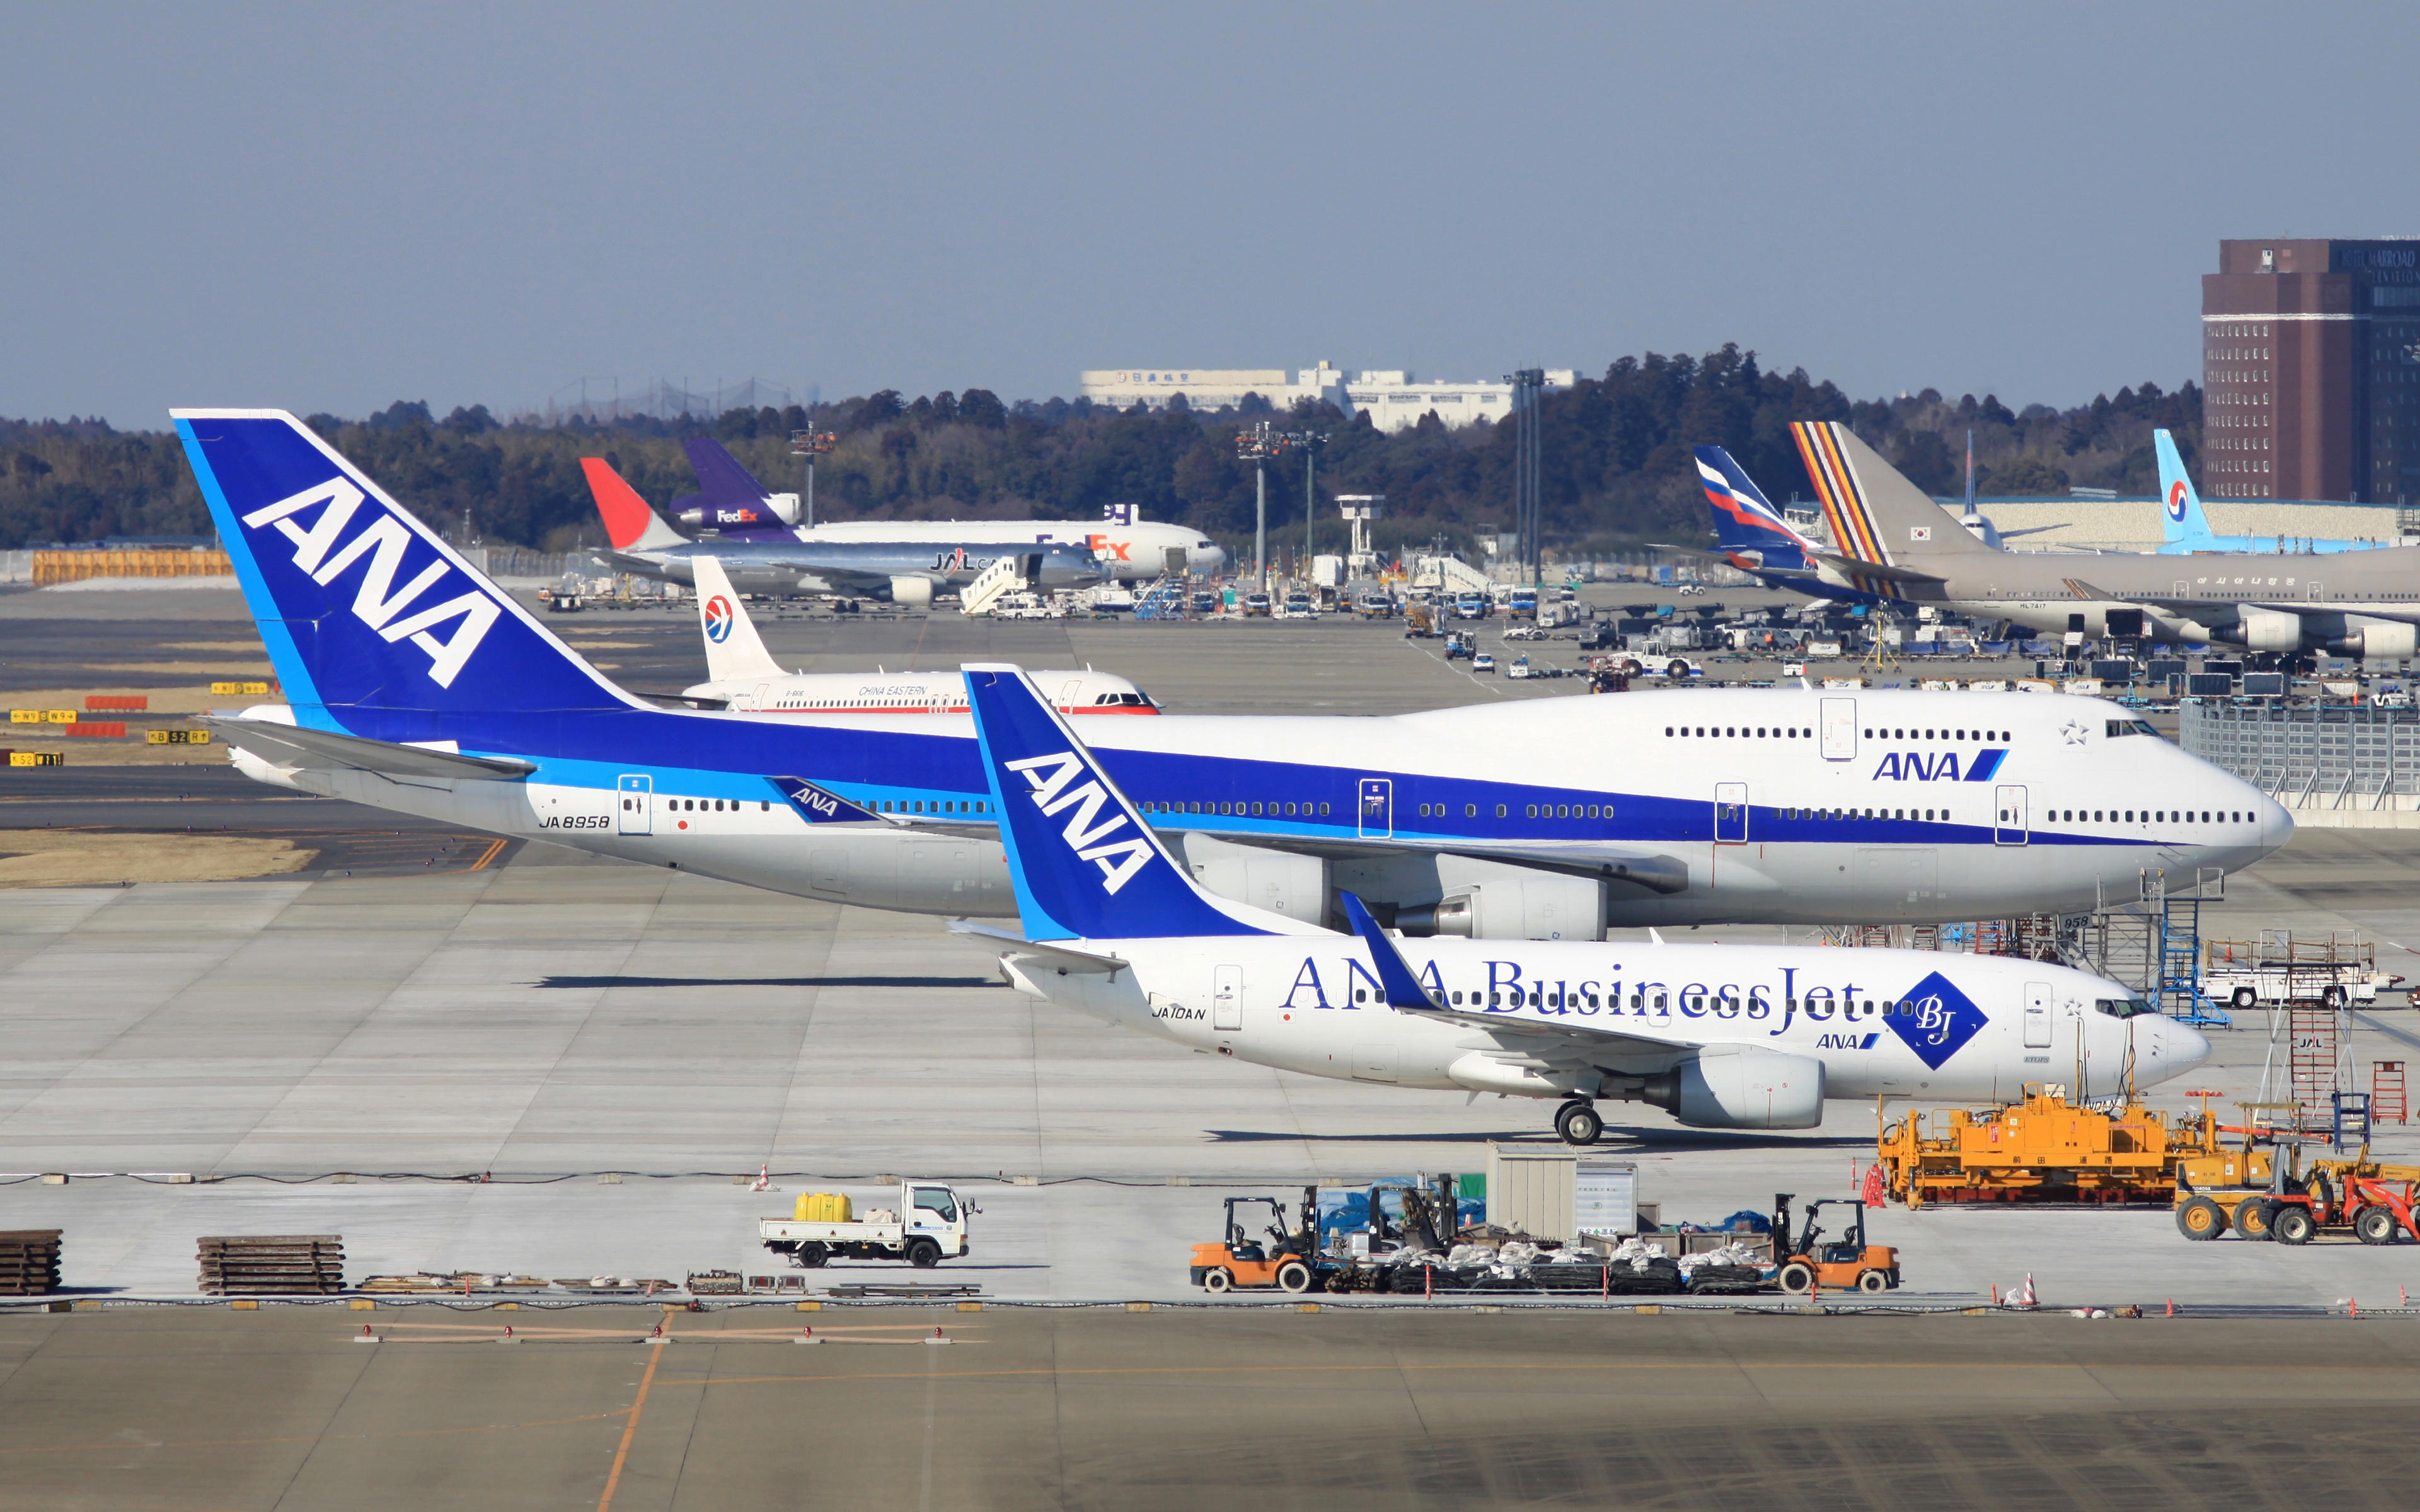 General 3840x2400 aircraft Boeing 747 Boeing 737 airport transport